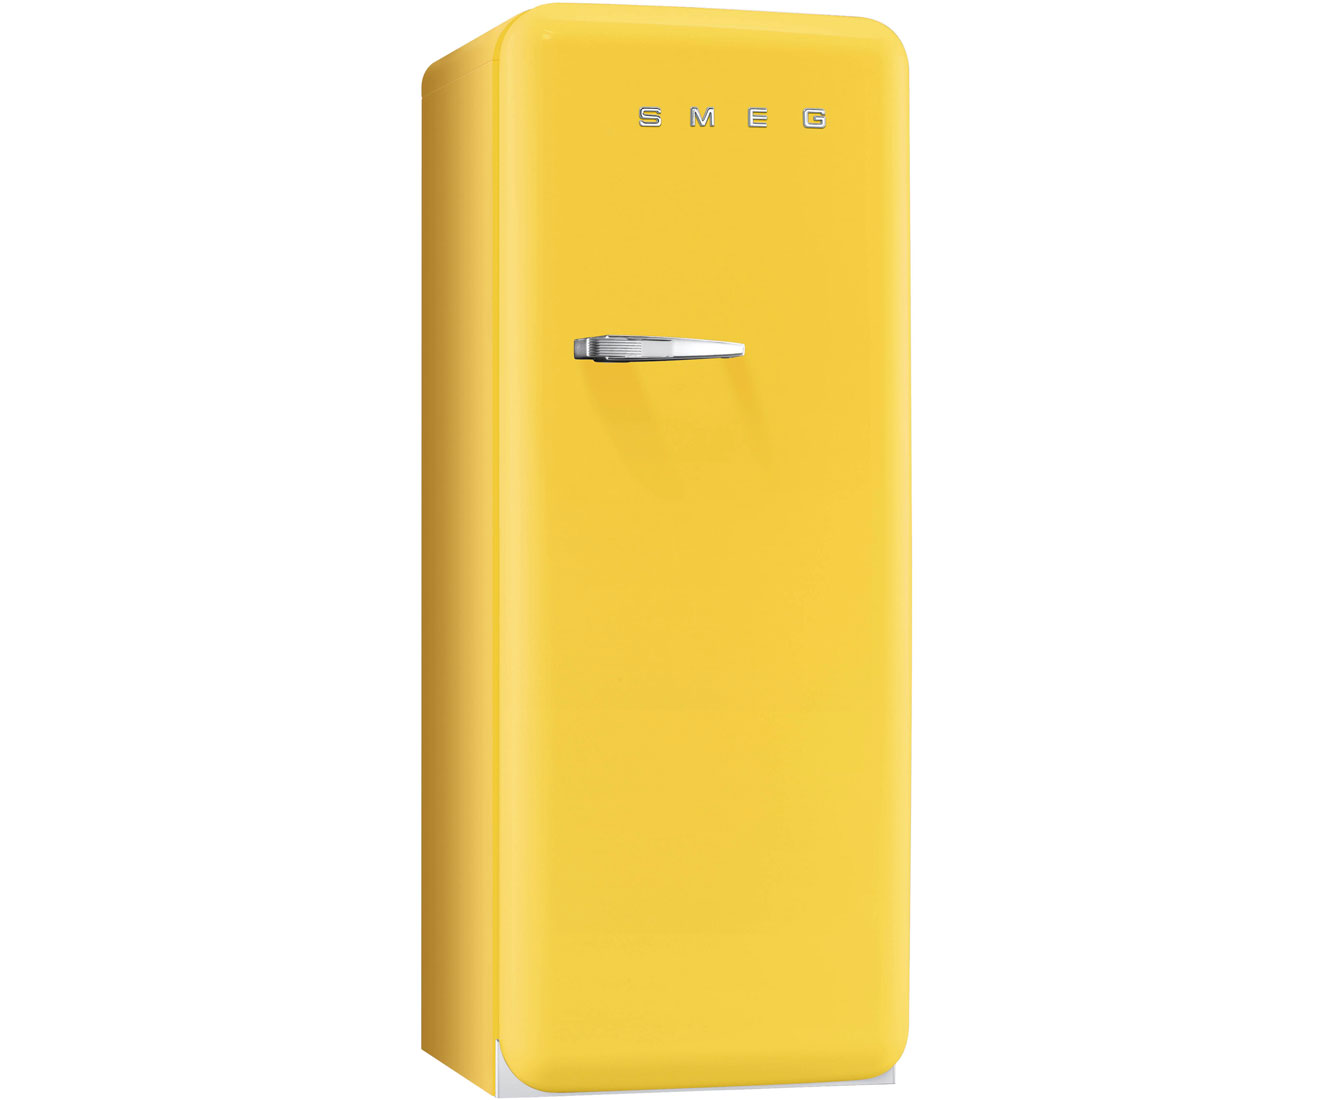 Yellow Fridge Freezer Smeg Fab28qg1 Right Hand Hinge Free Standing 60cm 222